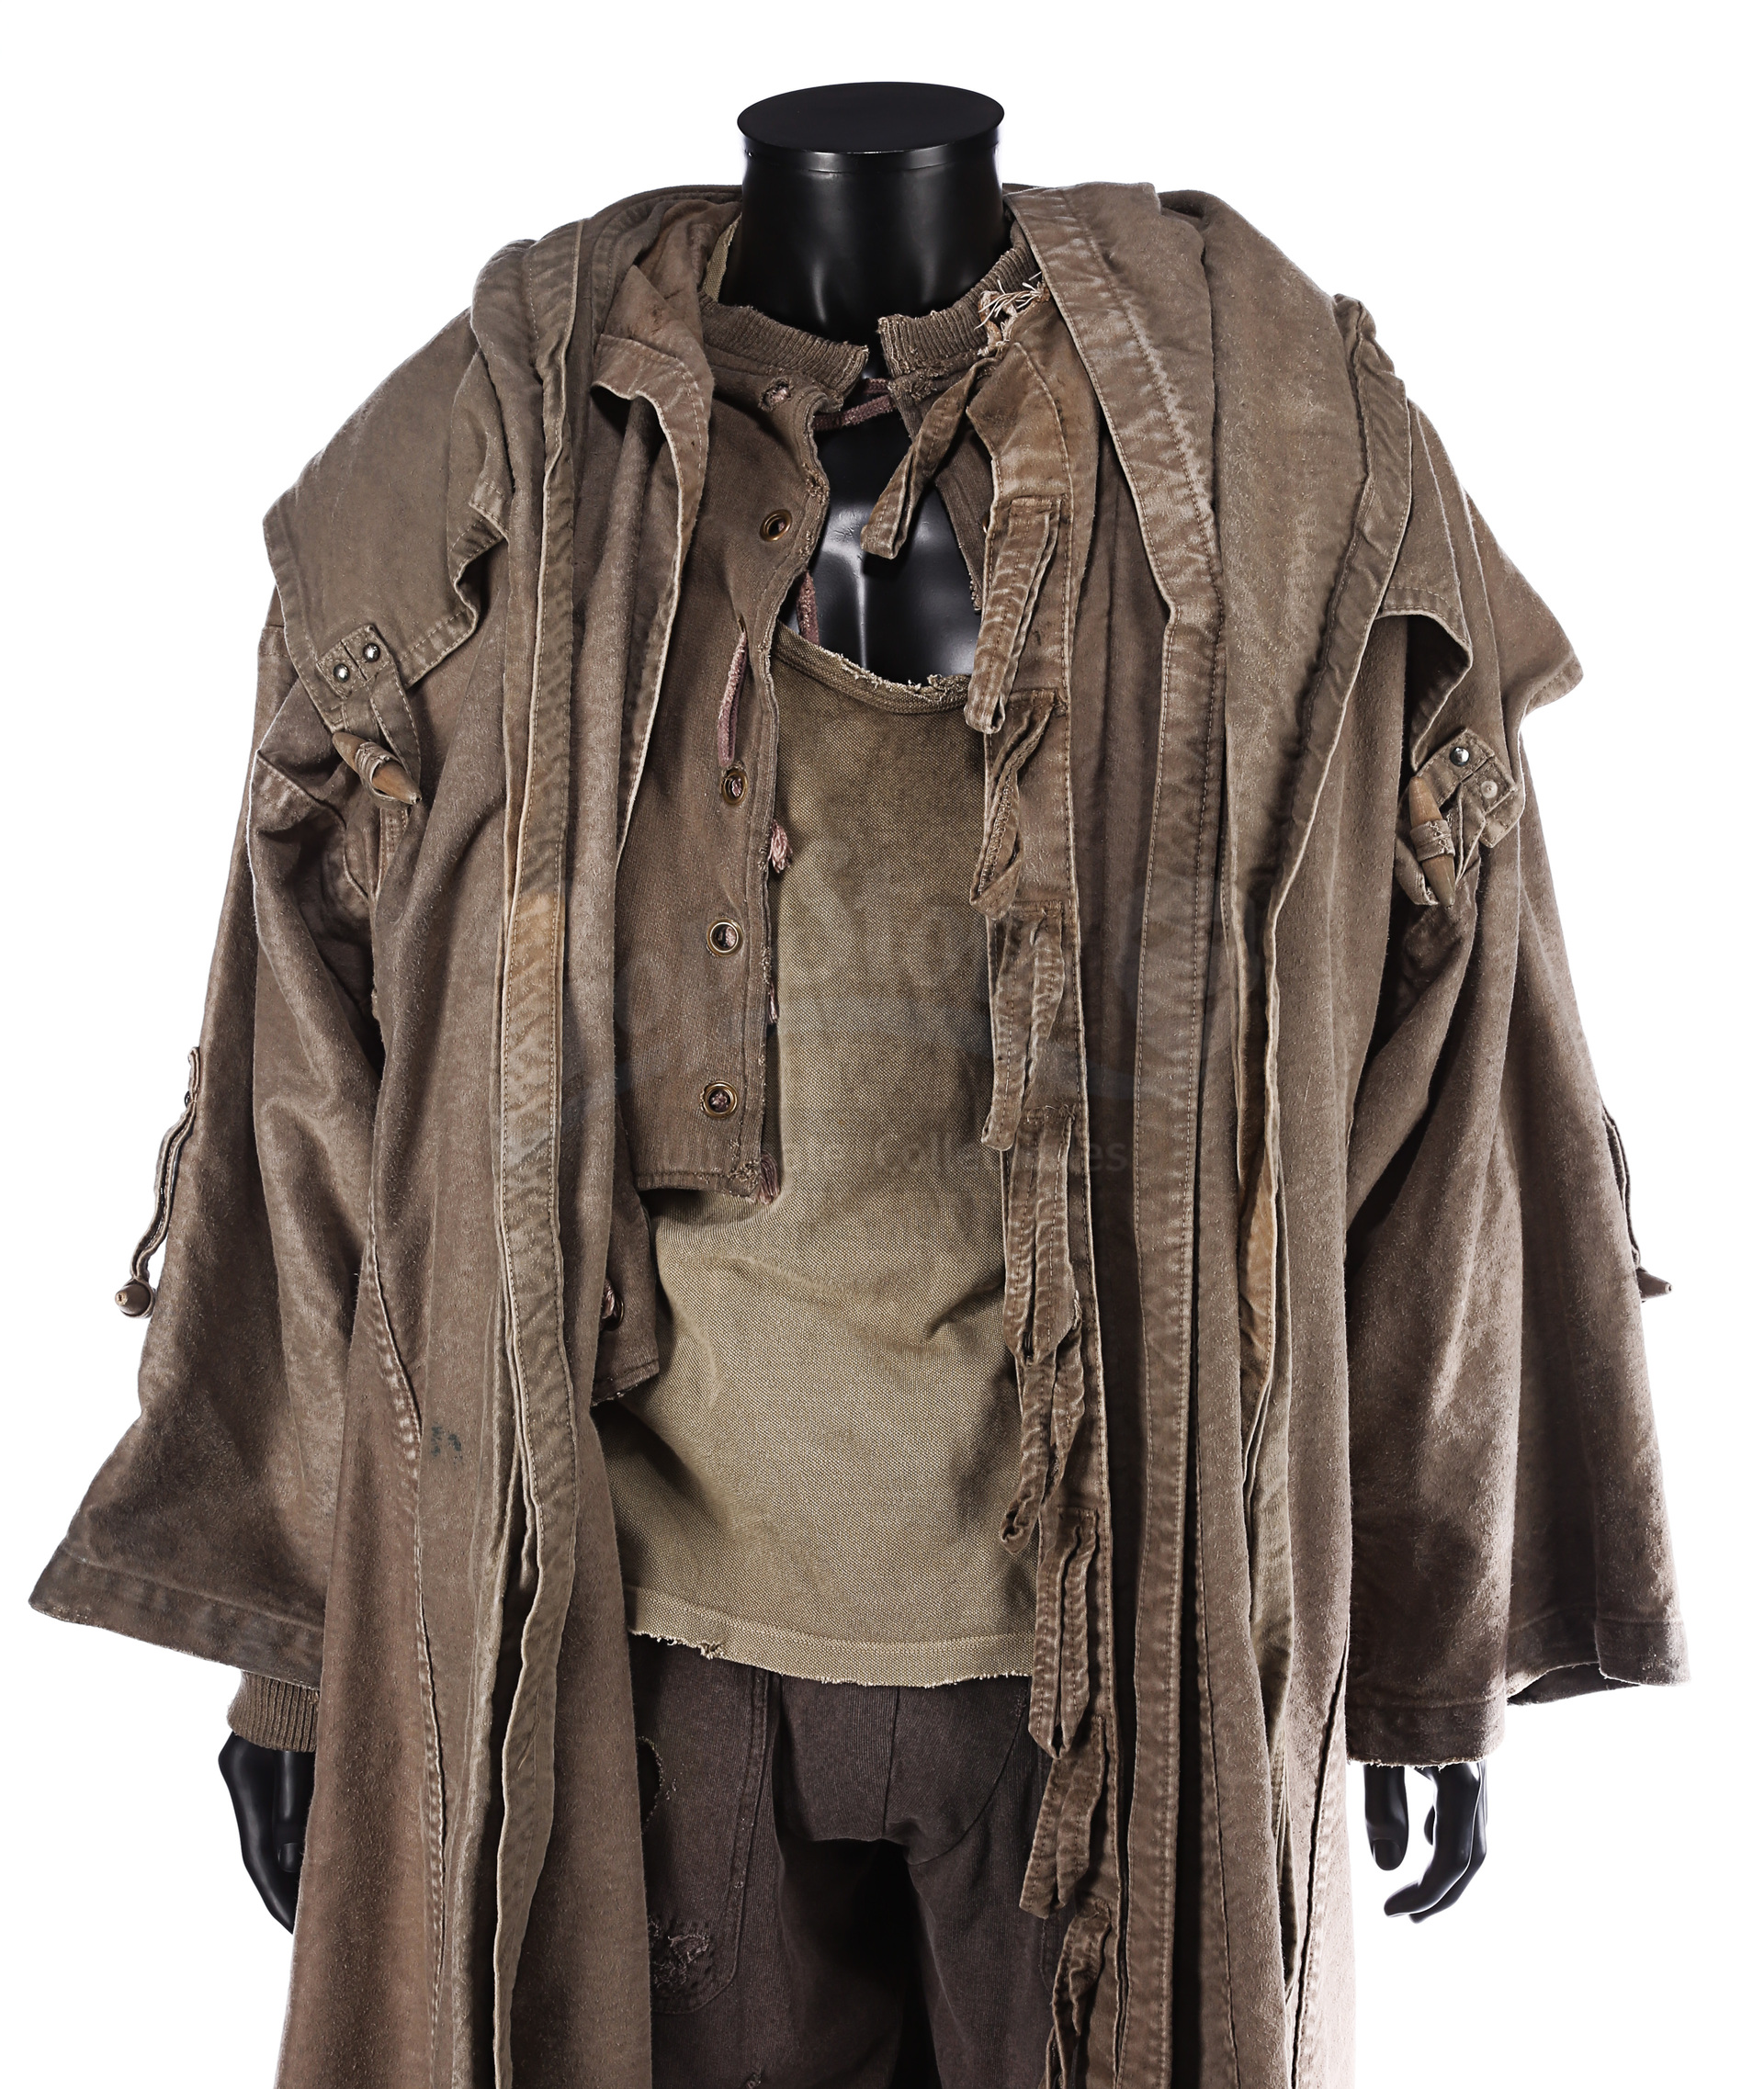 ALIEN3 (1992) - Dillon's (Charles S. Dutton) Complete Costume - Image 2 of 17